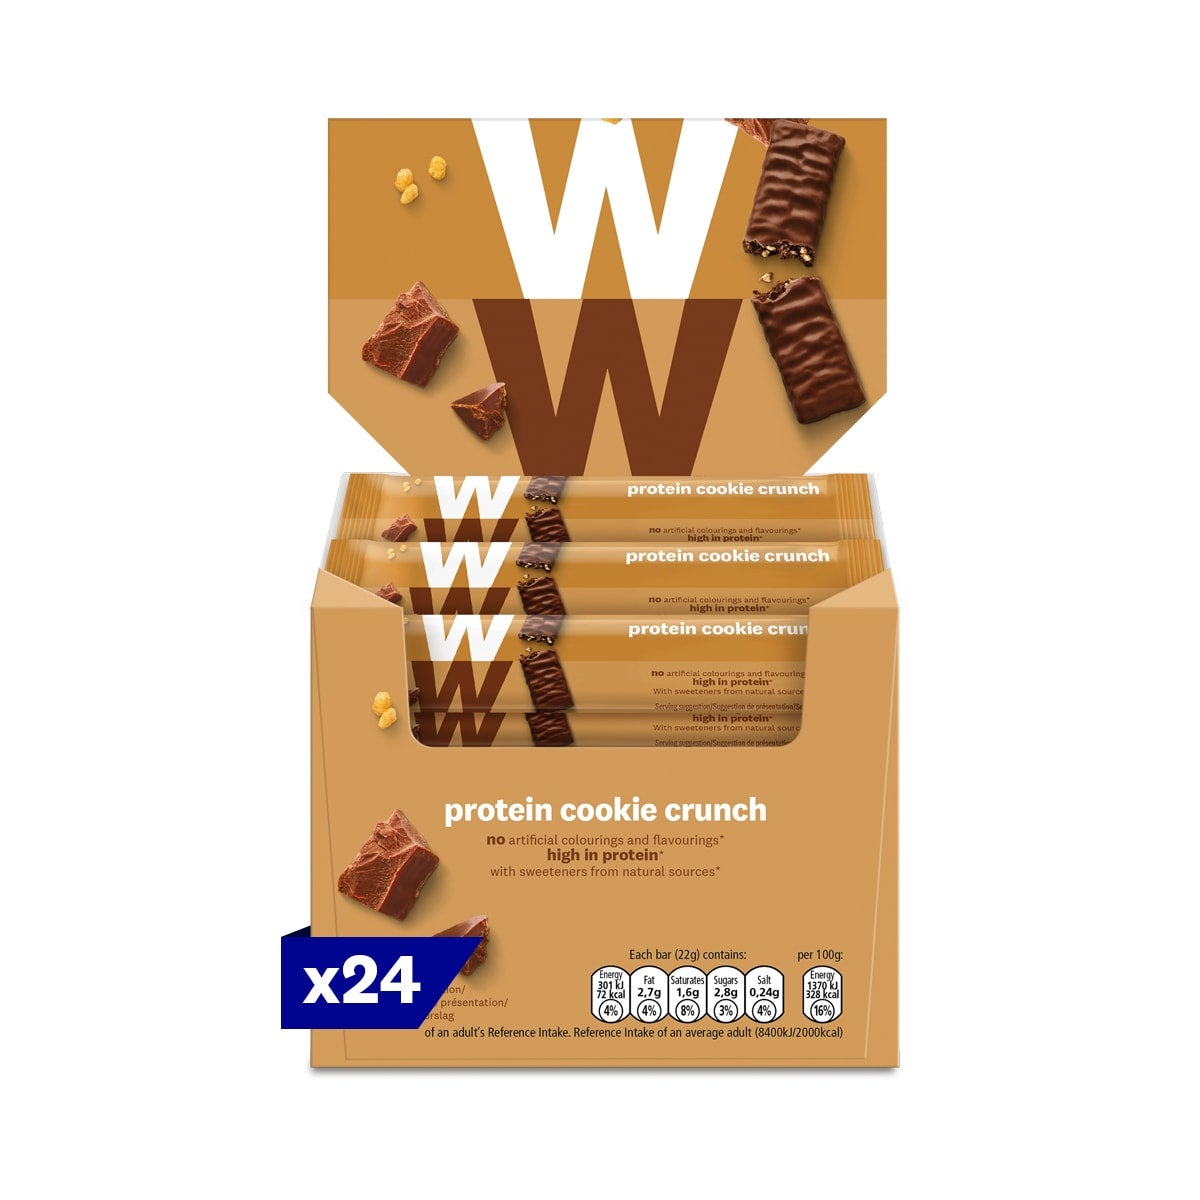 Box of 24, WW Protein Cookie Crunch Bar, wrapped in velvety milk chocolate, 2 SmartPoints values, high in protein, suitable for vegetarians